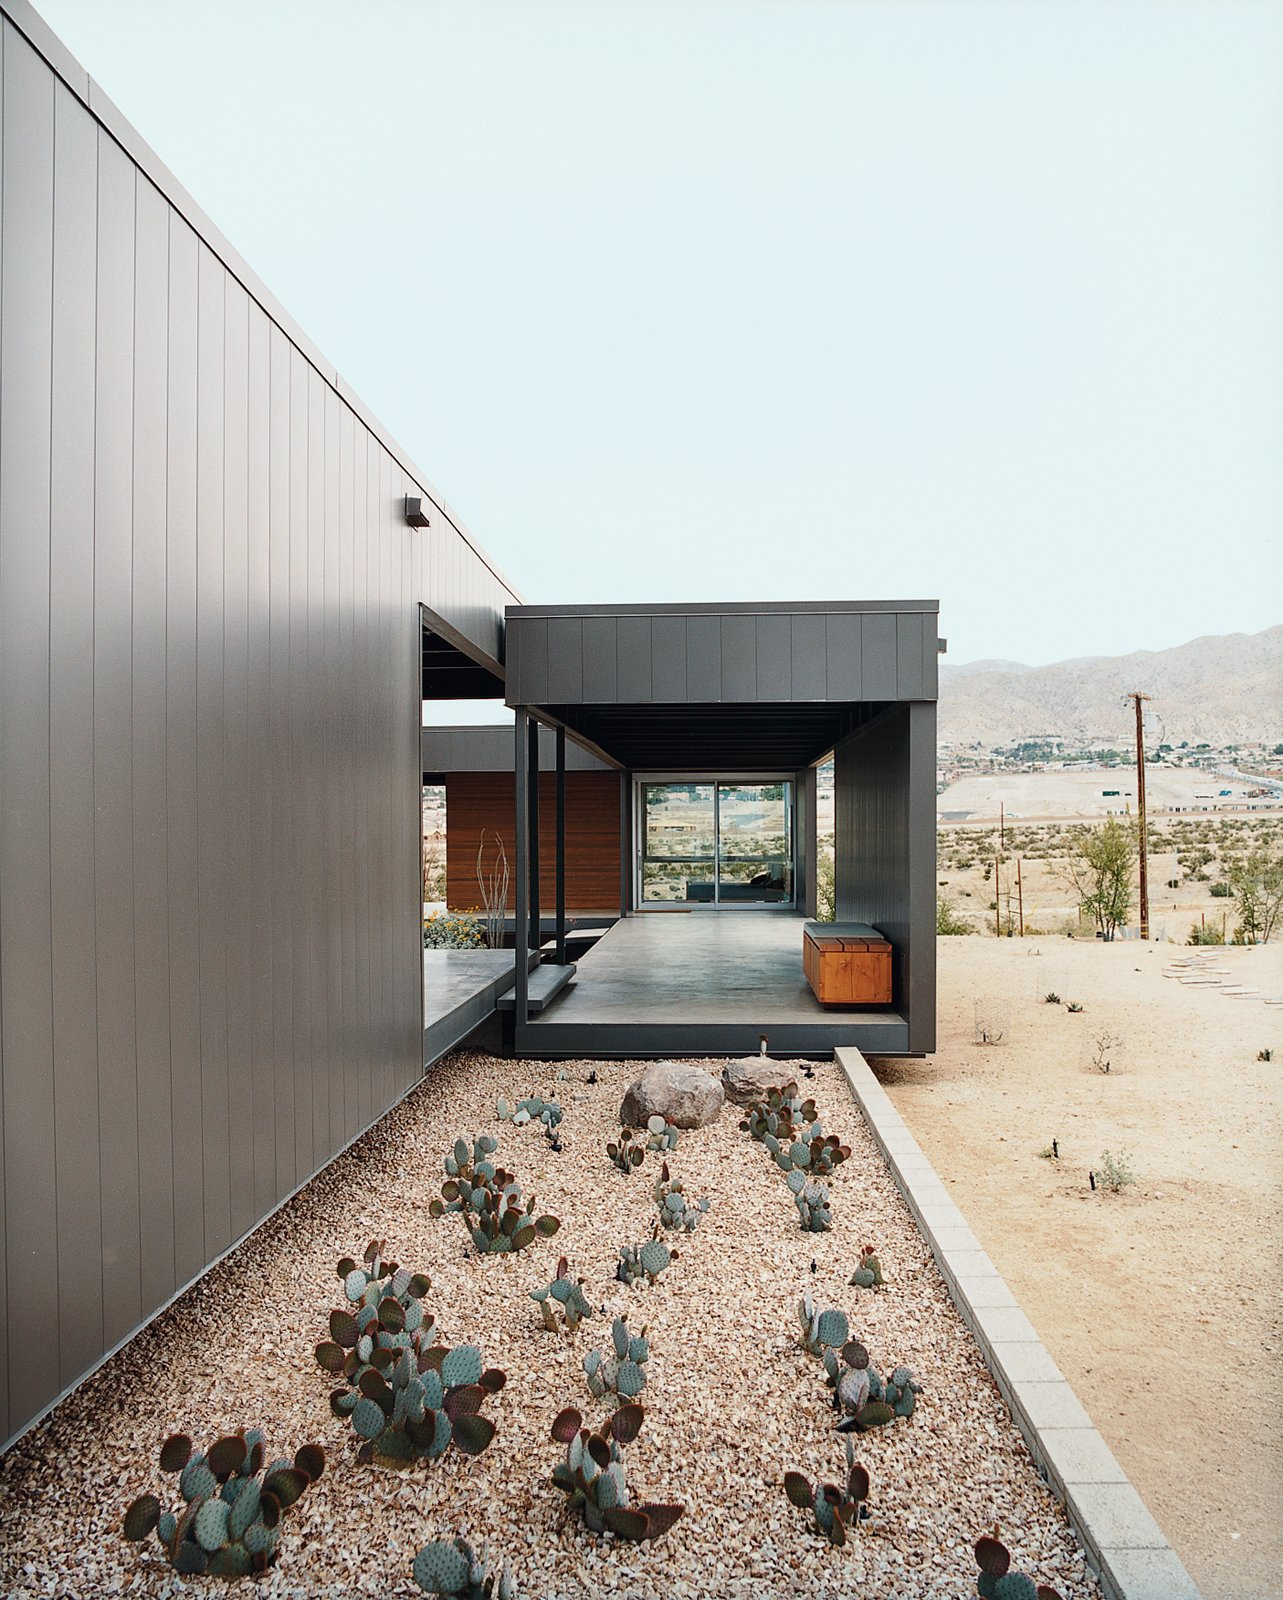 Ocotillo was placed in key areas as a great structural focal point. Desert Utopia - Photo 5 of 9